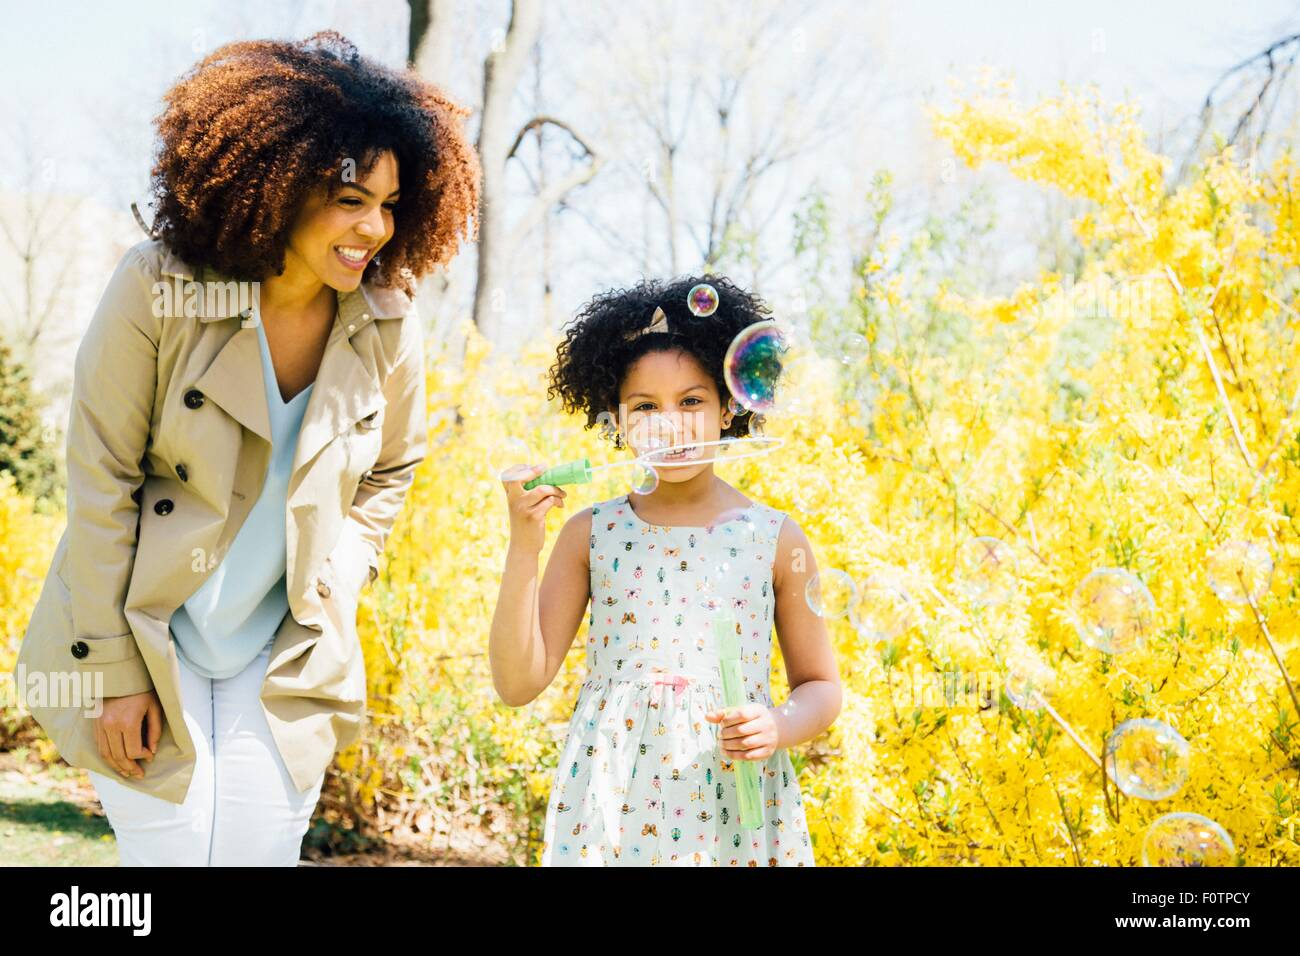 Front view of mother and daughter blowing bubbles - Stock Image